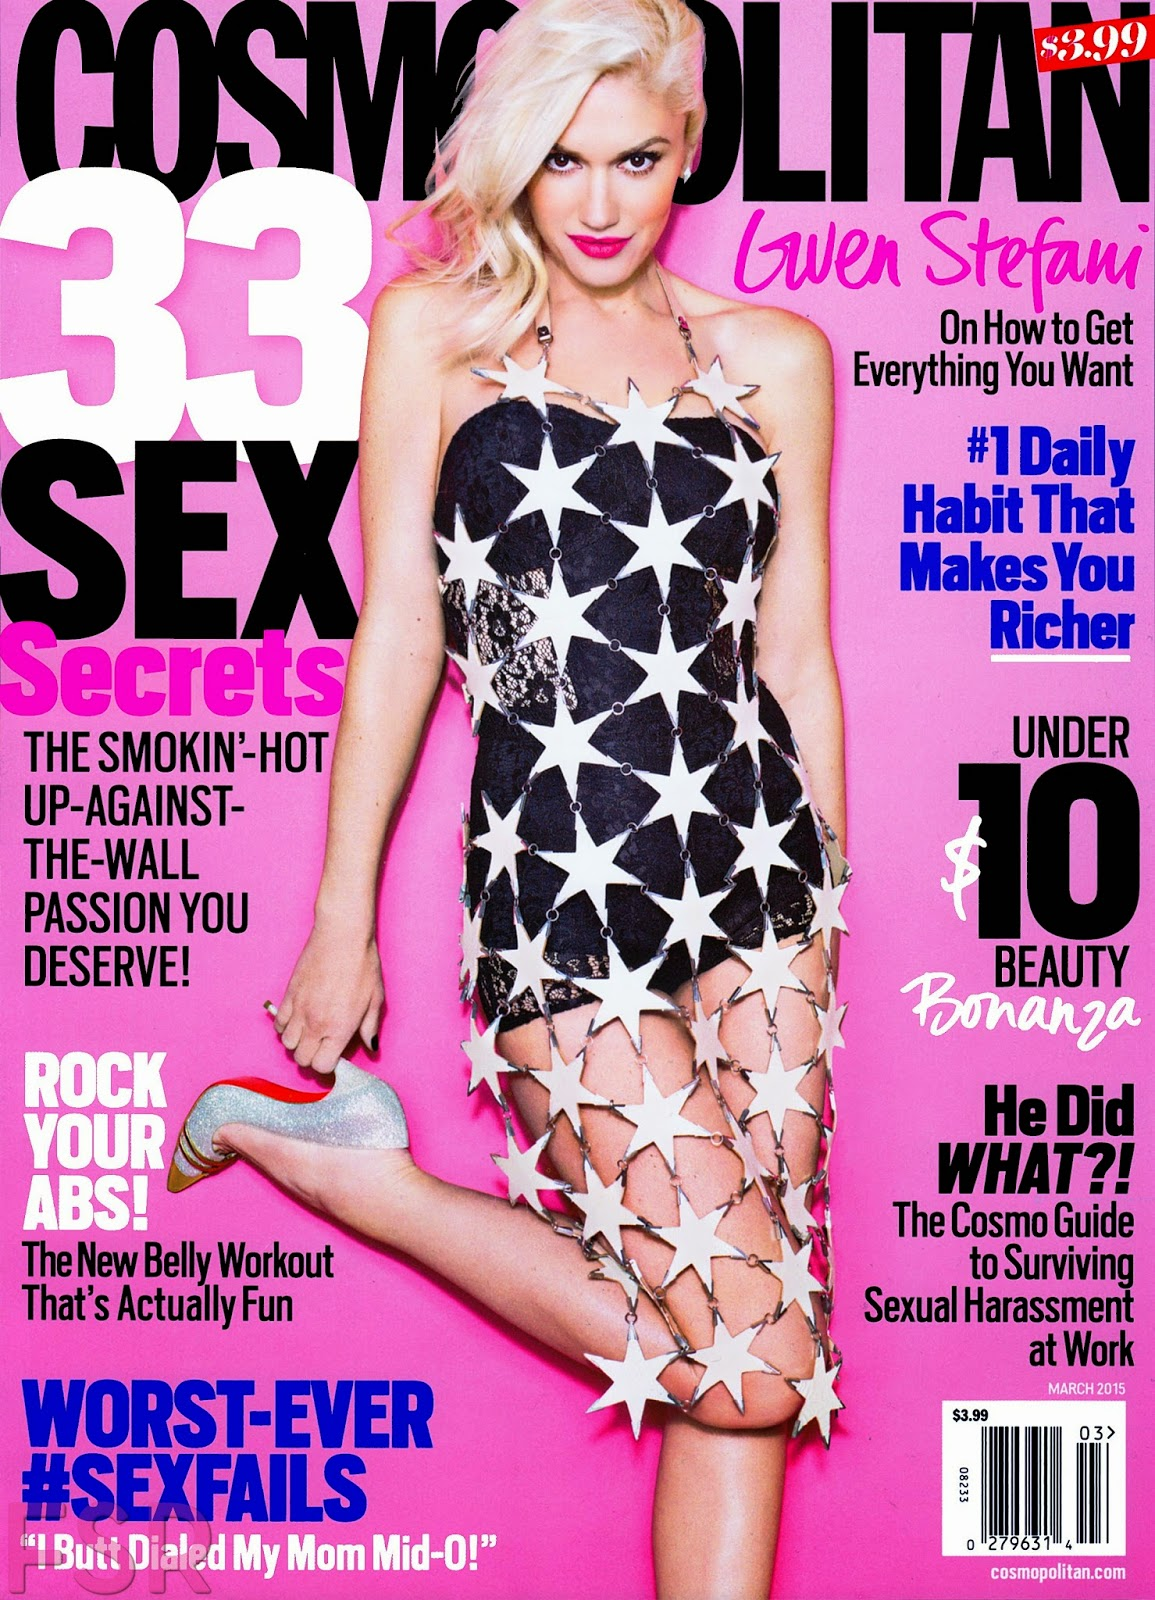 Singer , Songwriter , Fashion Designer , Actress: Gwen Stefani for Cosmopolitan US